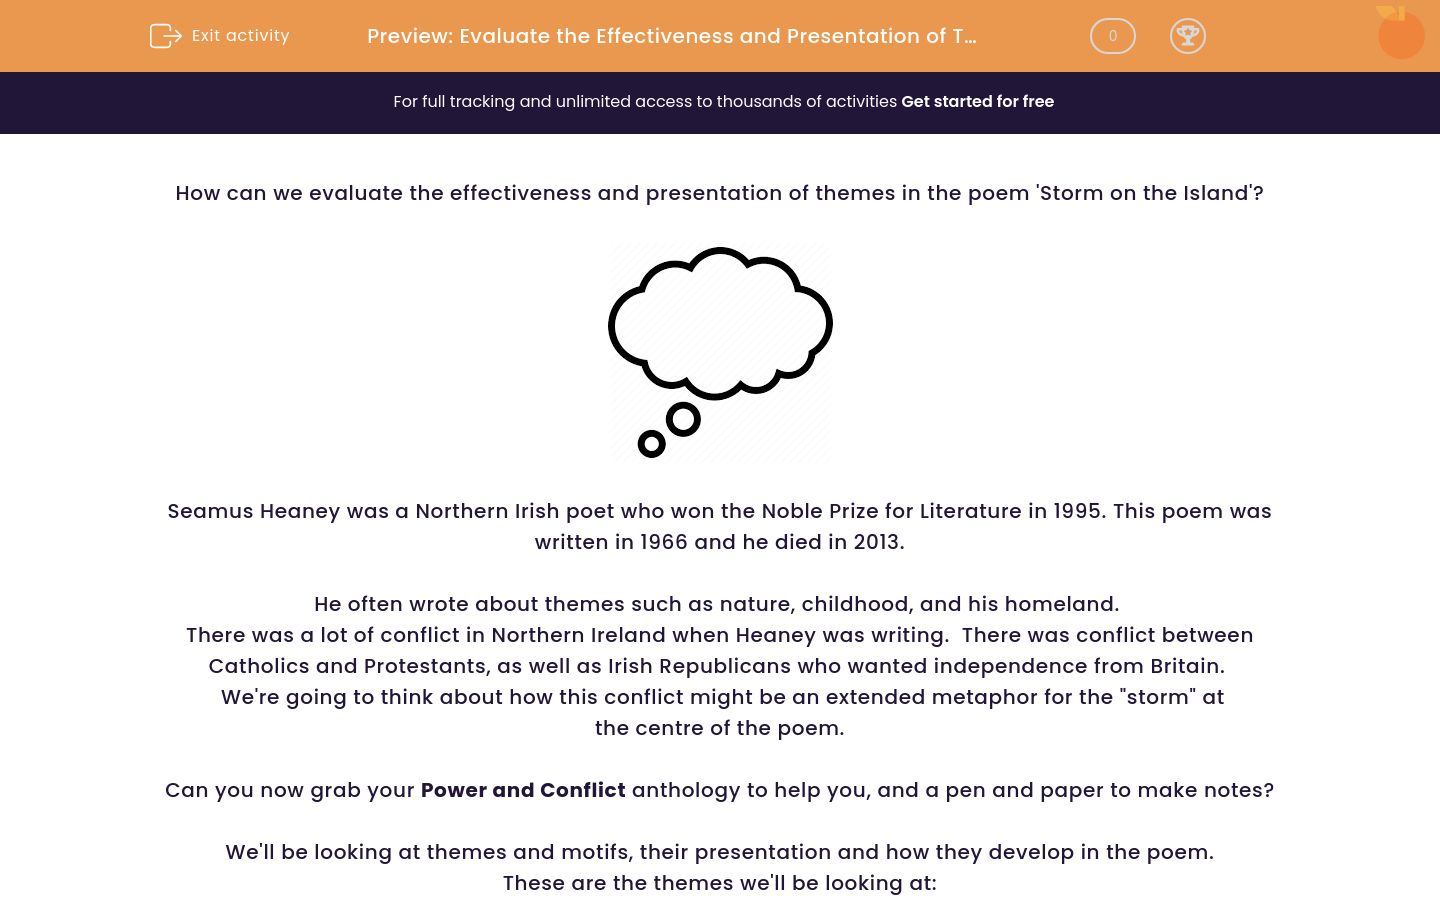 'Evaluate the Effectiveness and Presentation of Themes in the Poem 'Storm on the Island' by Seamus Heaney' worksheet